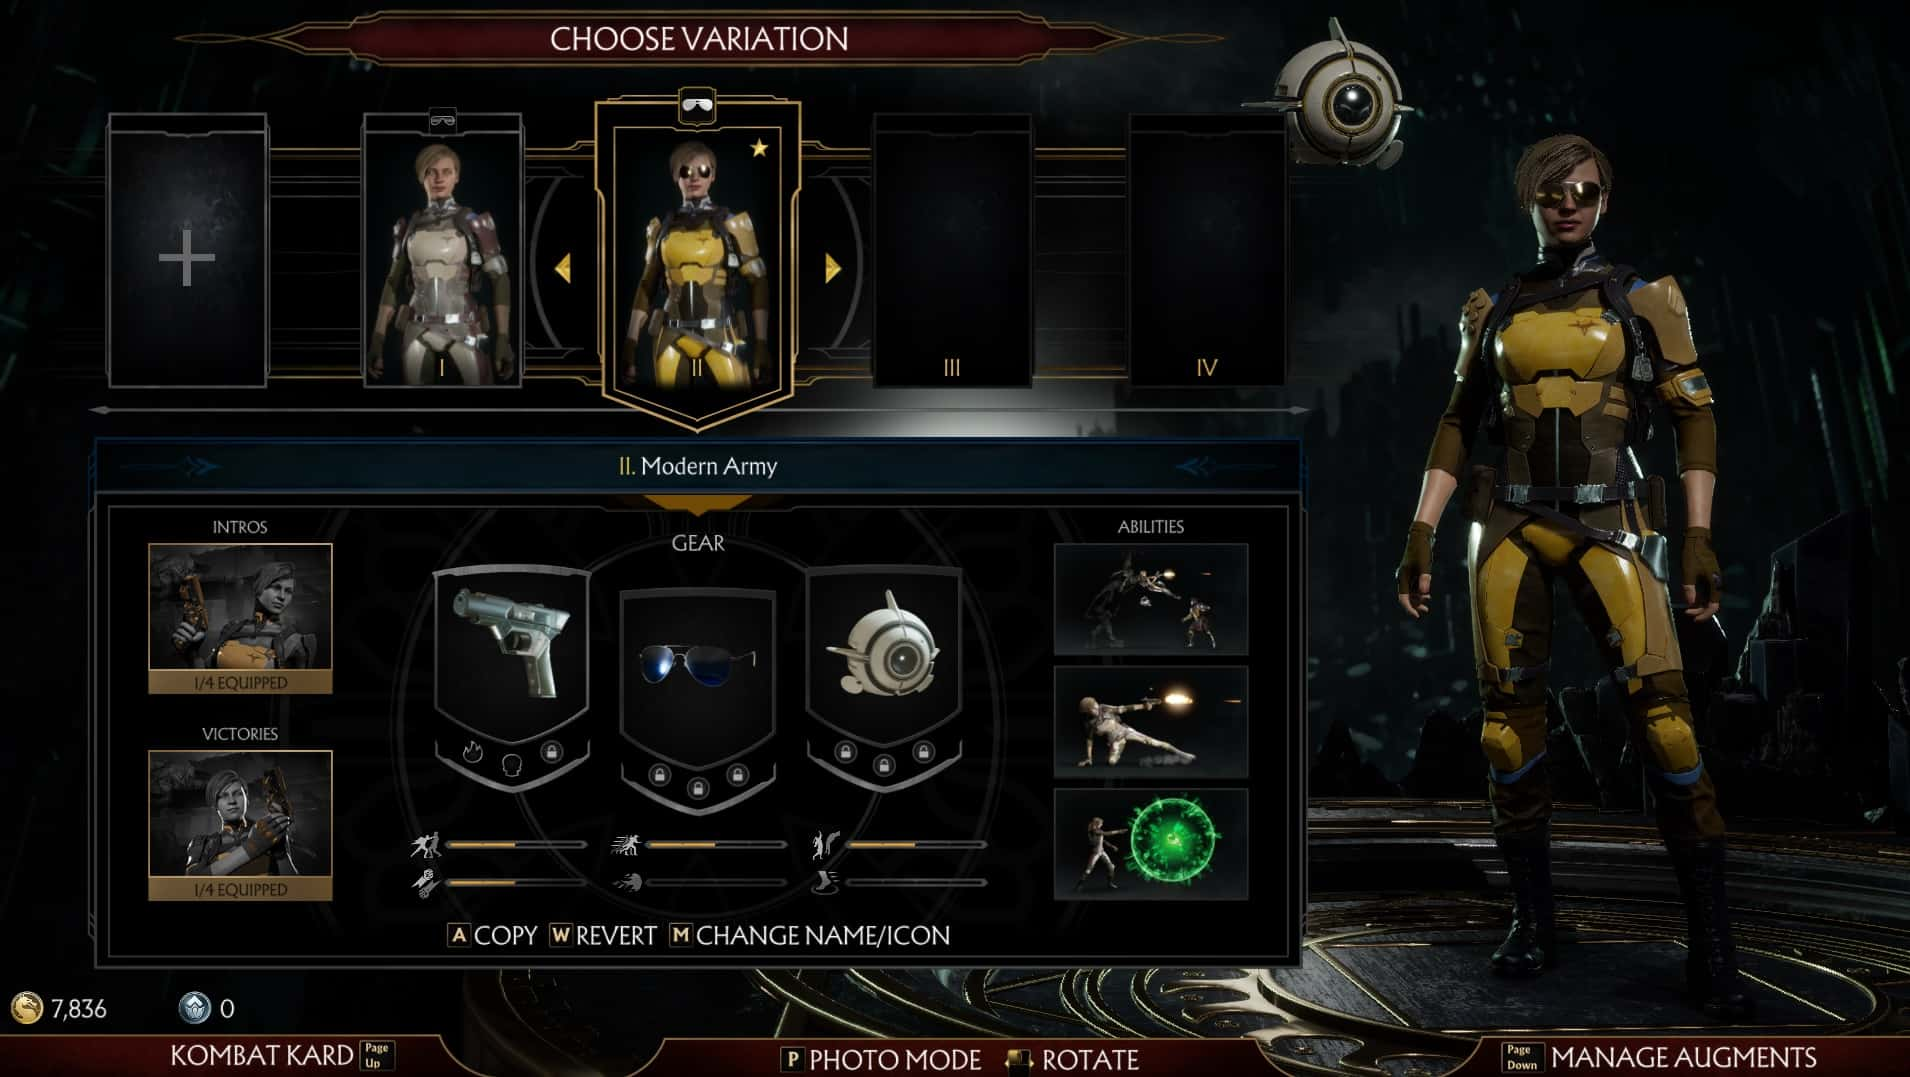 Mortal Kombat 11 character customisation screen - Mortal Kombat 11 Review